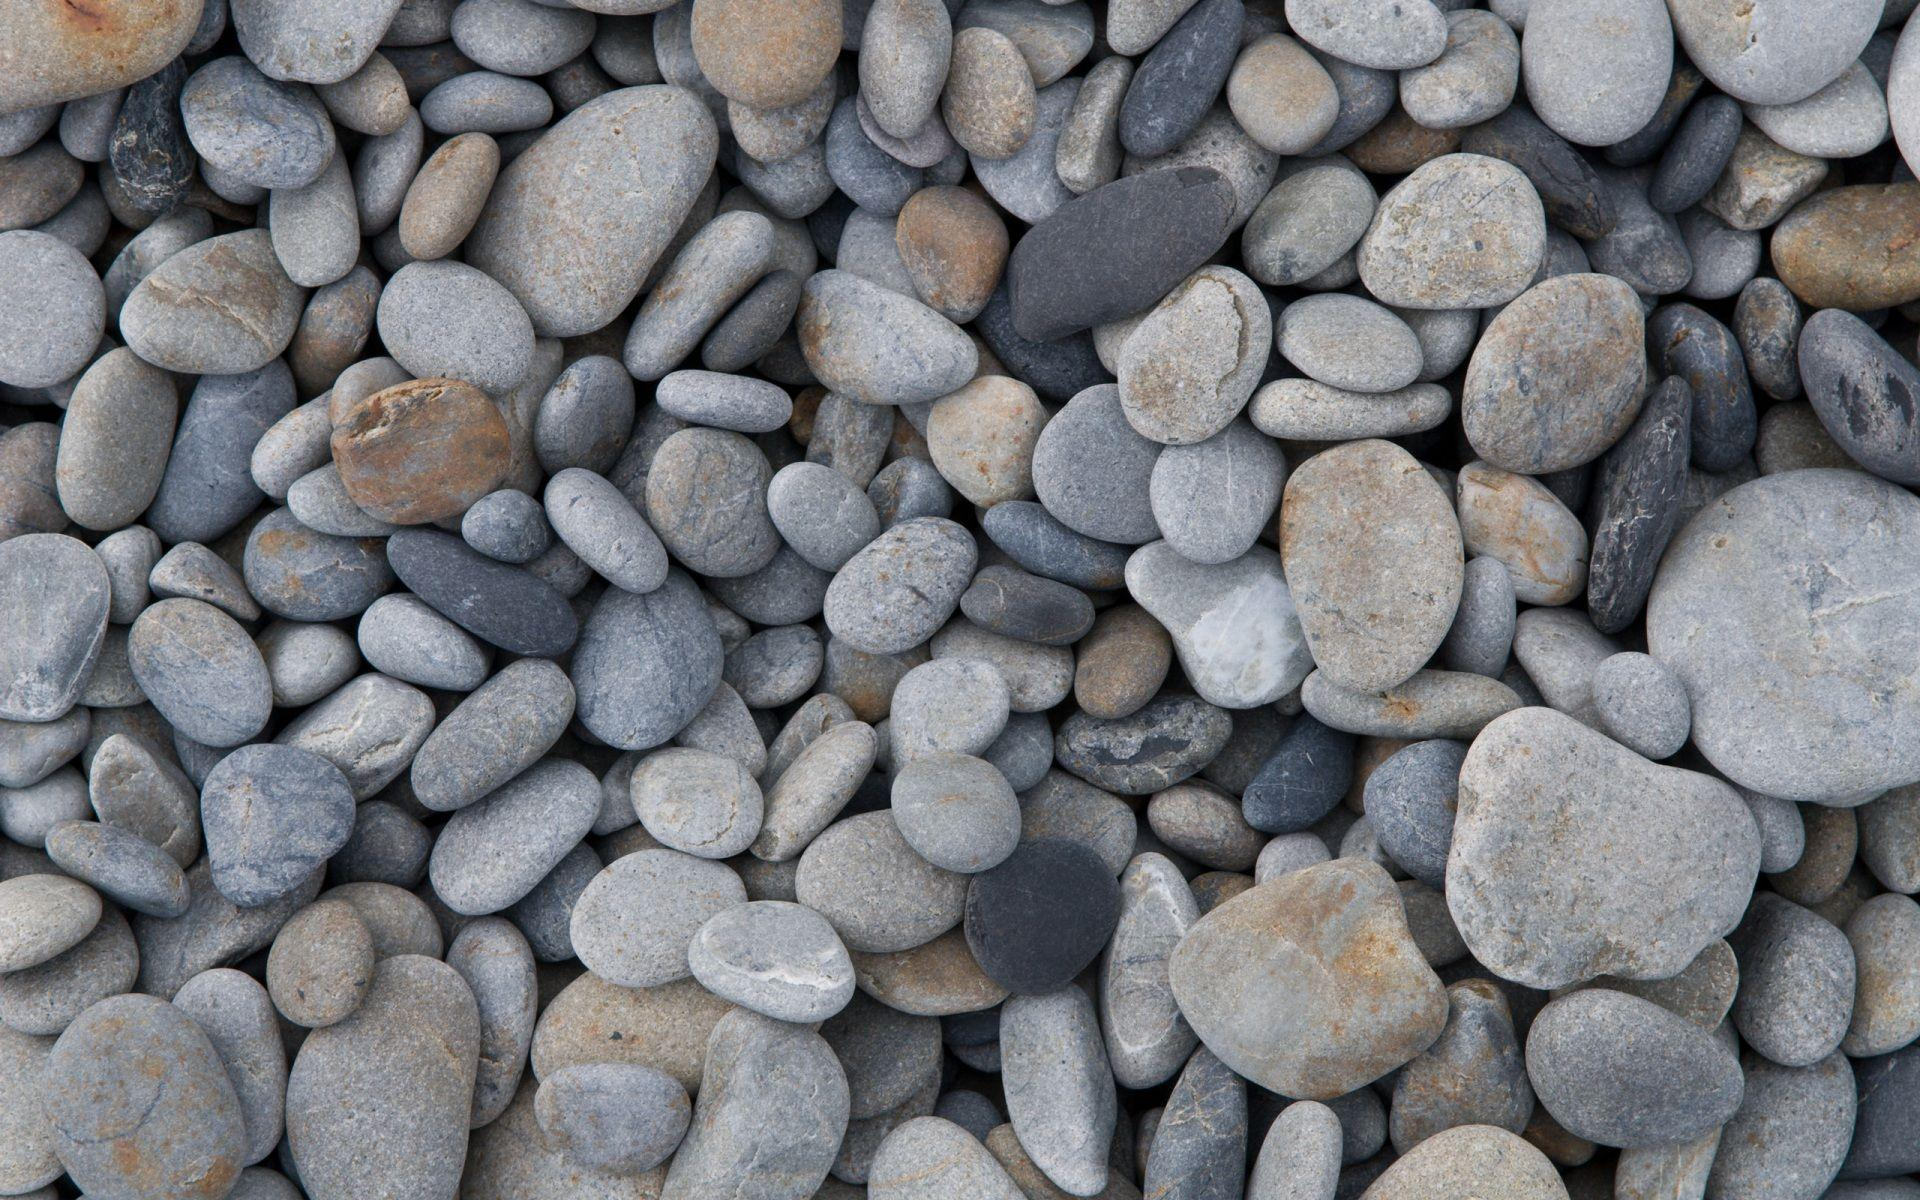 Pebble Wallpapers, Pebble Images for Windows and Mac Systems ...